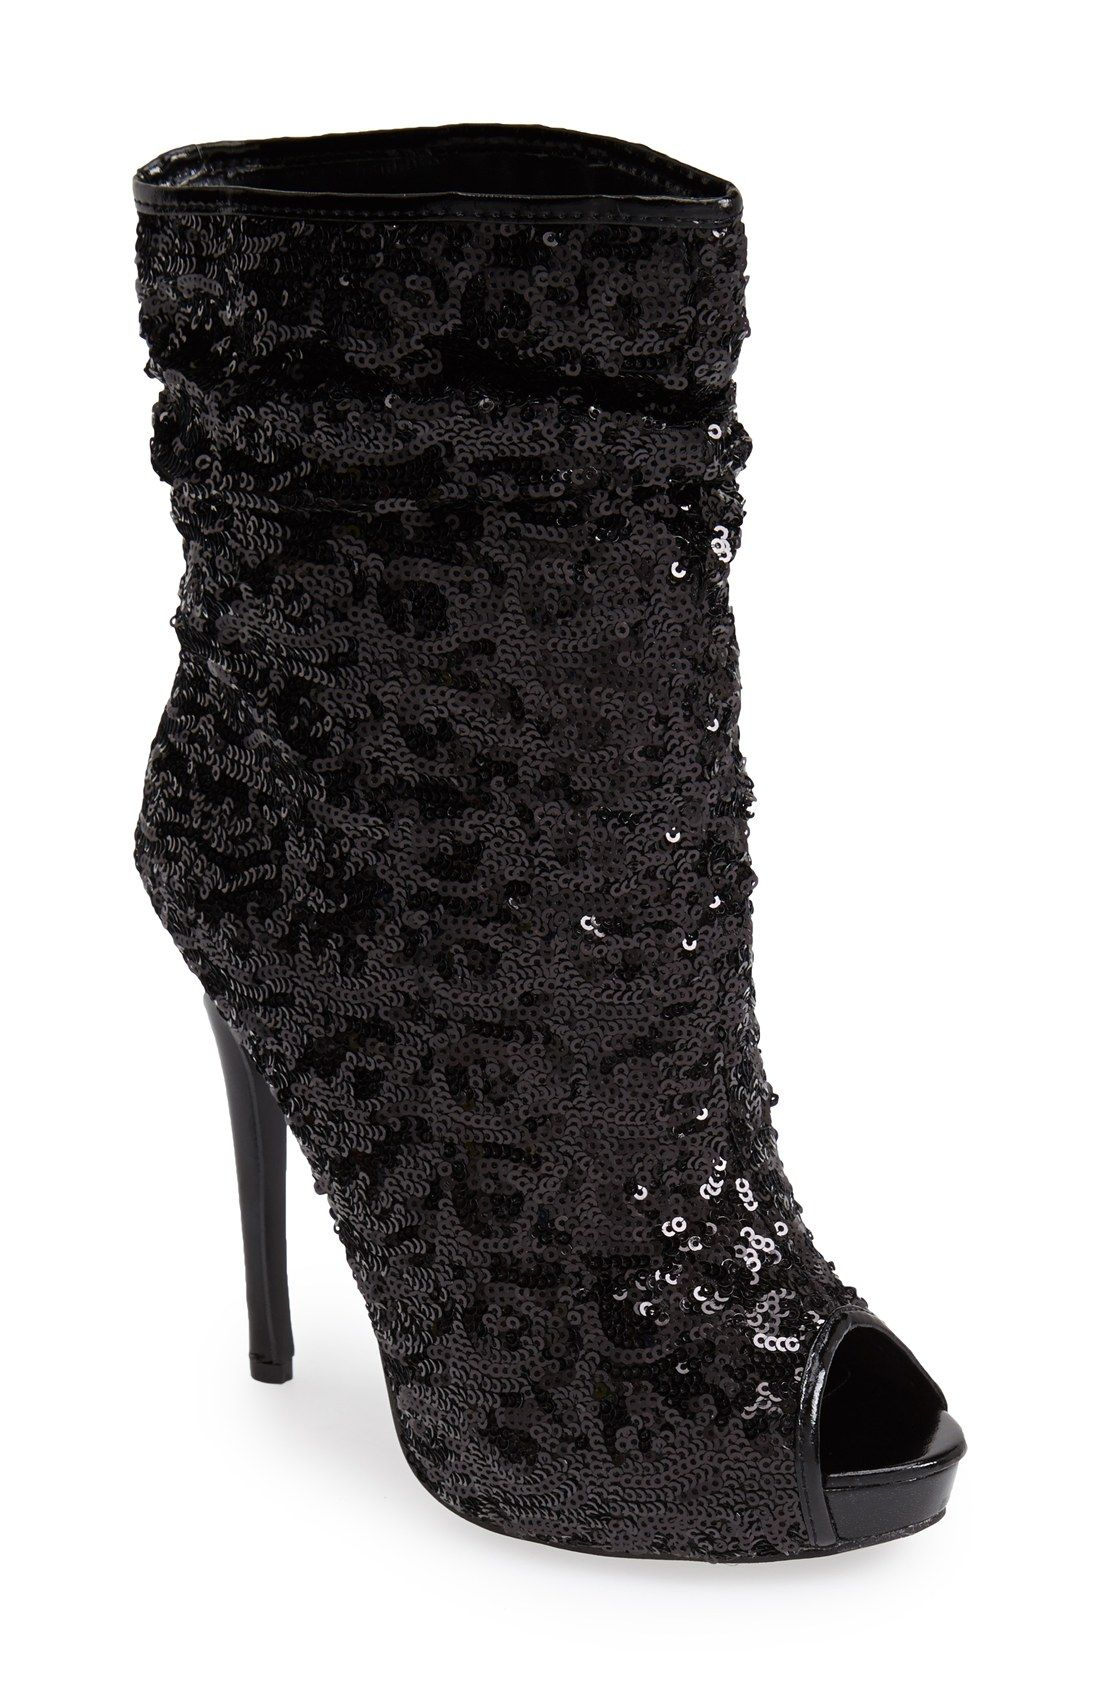 ae08fc3c2fd Excited to show off these black sequin peep toe booties!